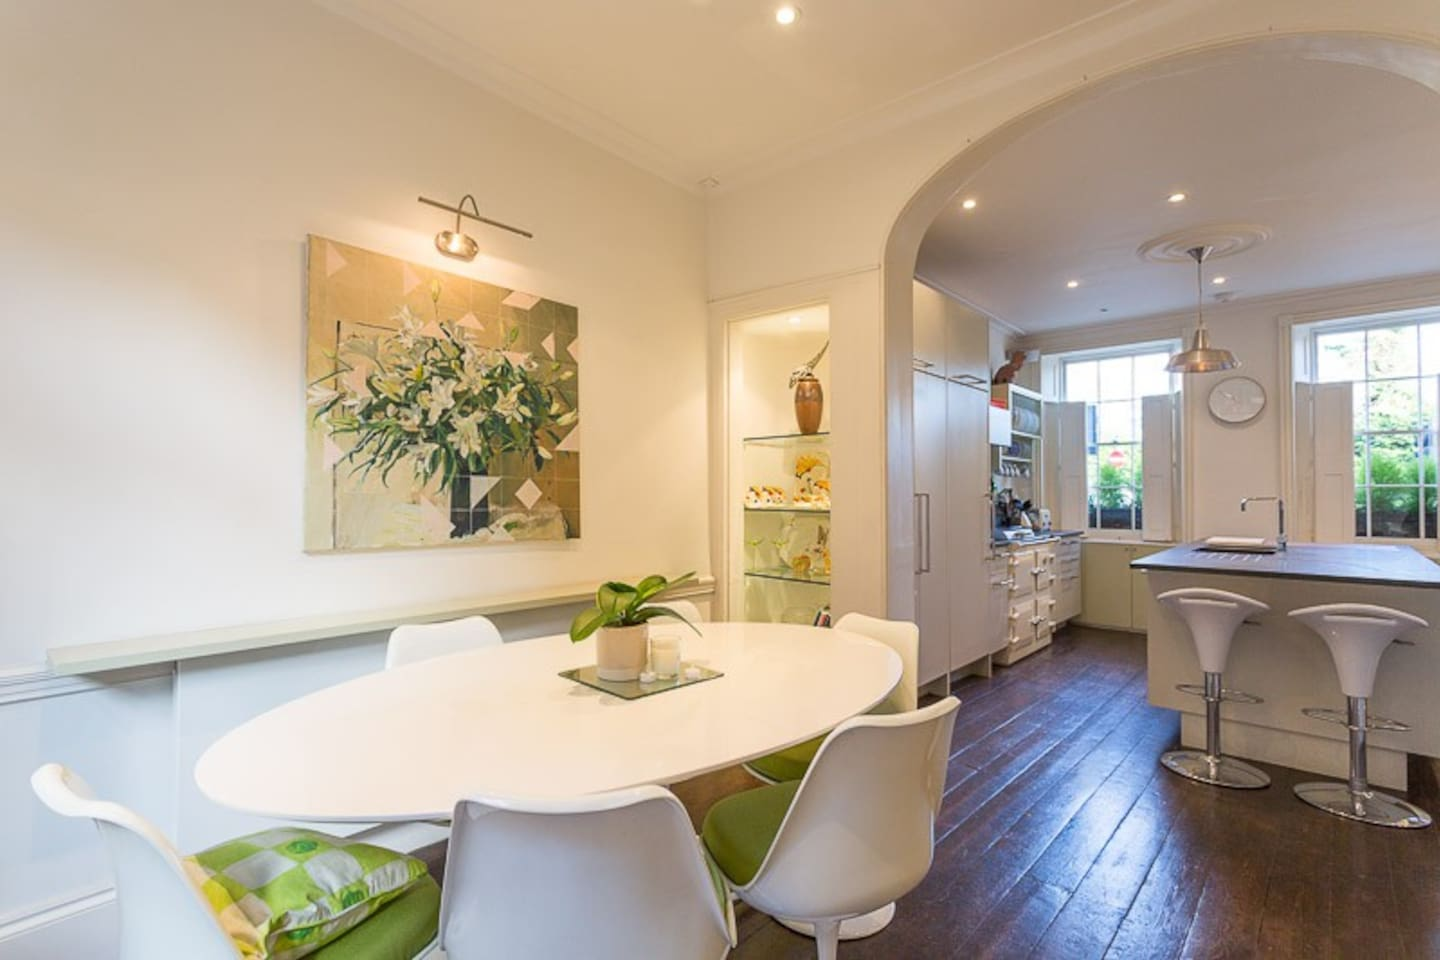 Open plan kitchen and dining.  Dining table seating 8.